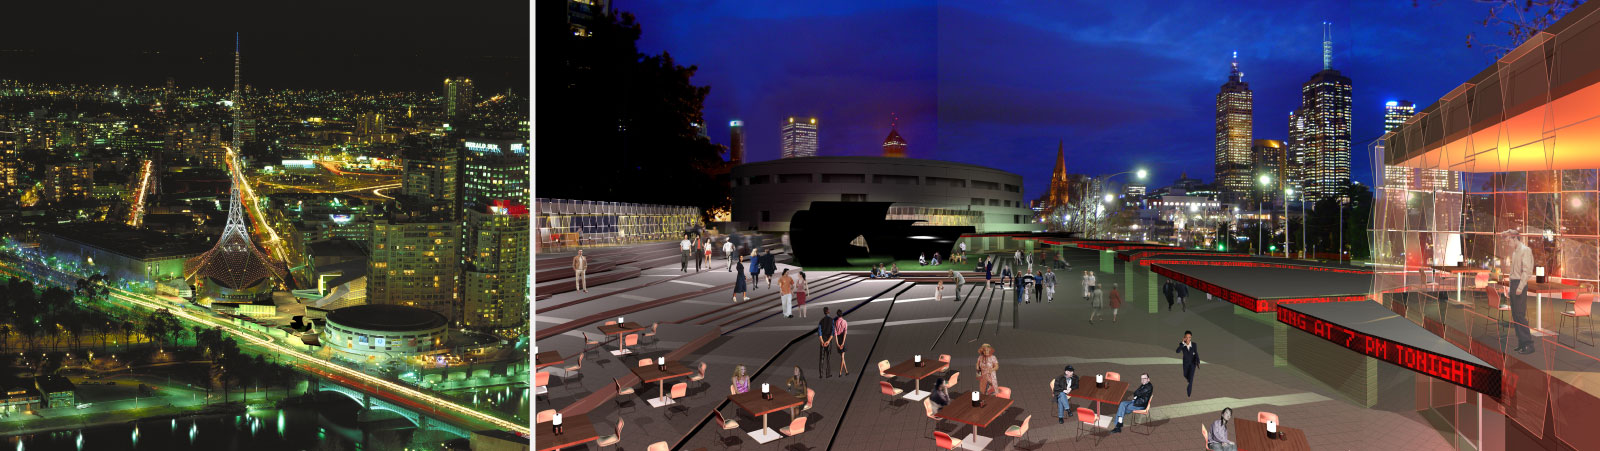 H2o-Architects-Melbourne-Victorian-Arts-Centre-Master-Plan-02